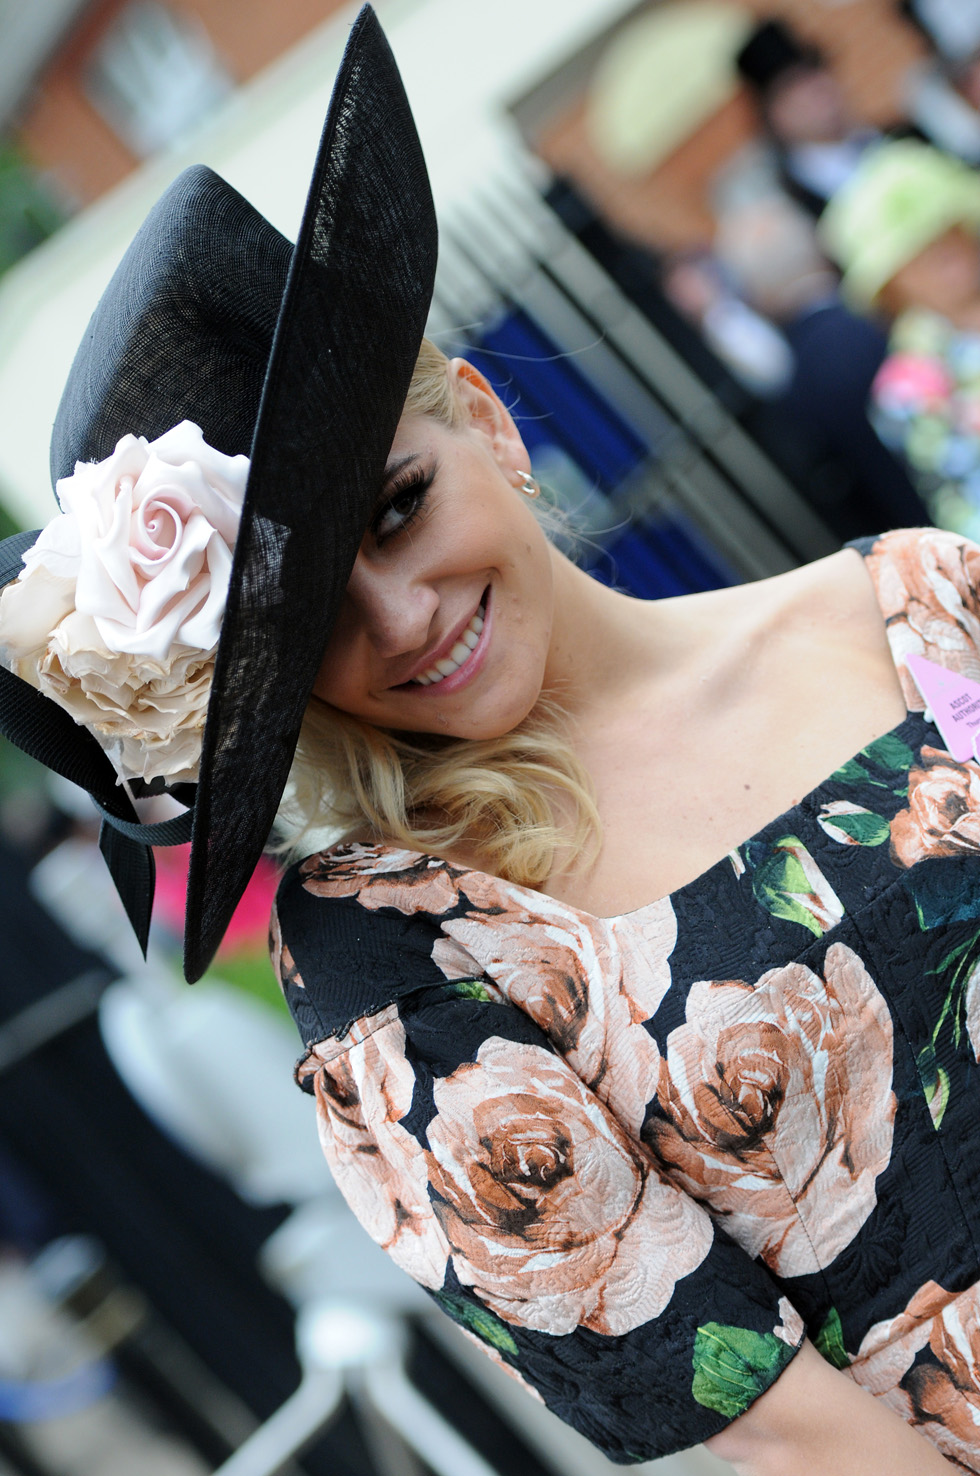 Pixie Lott attends Ladies Day on Day 3 of Royal Ascot. Eamonn M. McCormack/Getty Images